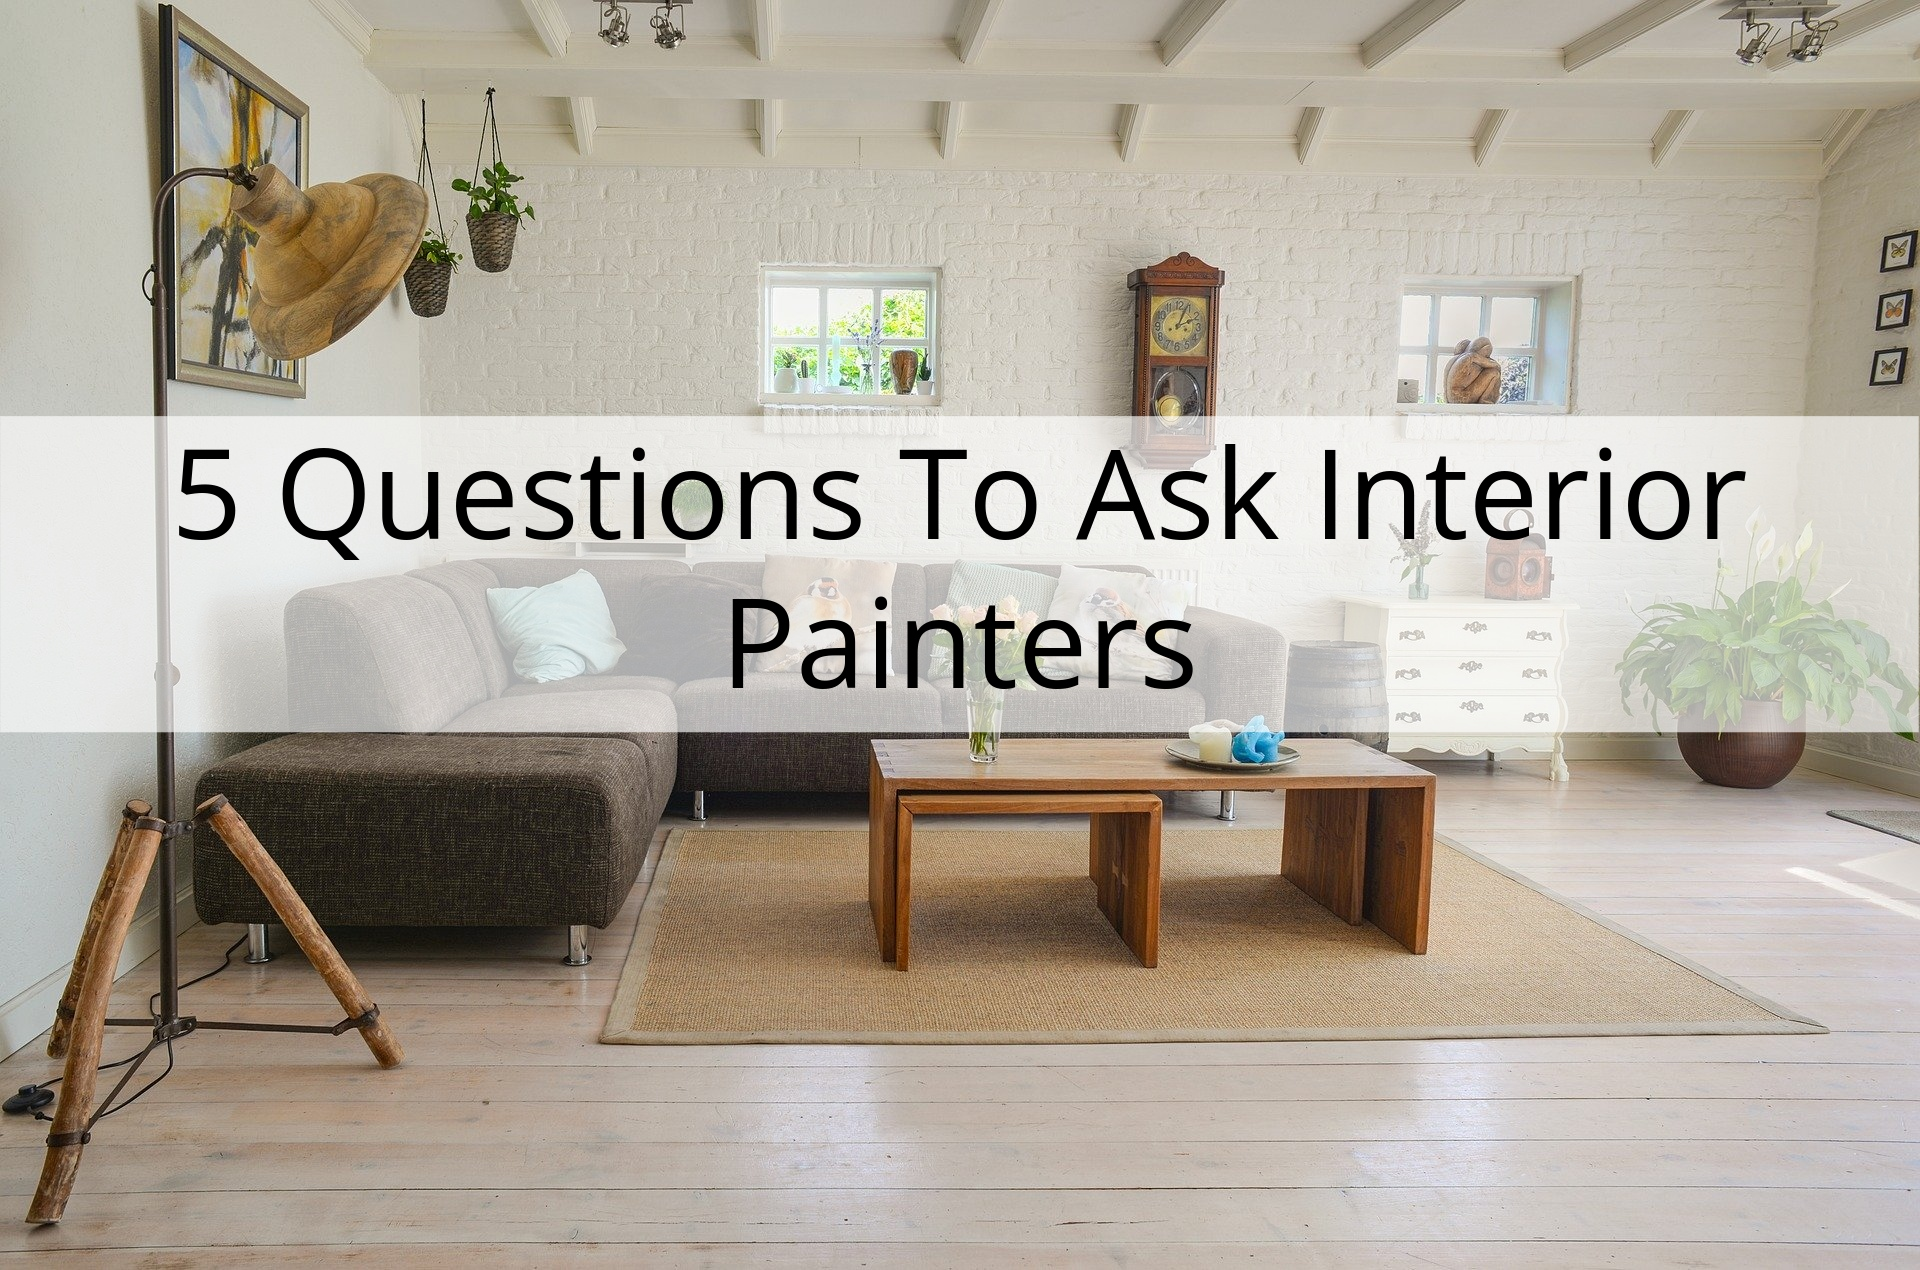 2020-02-09 Selah Painting St Louis MO 5 Questions To Ask